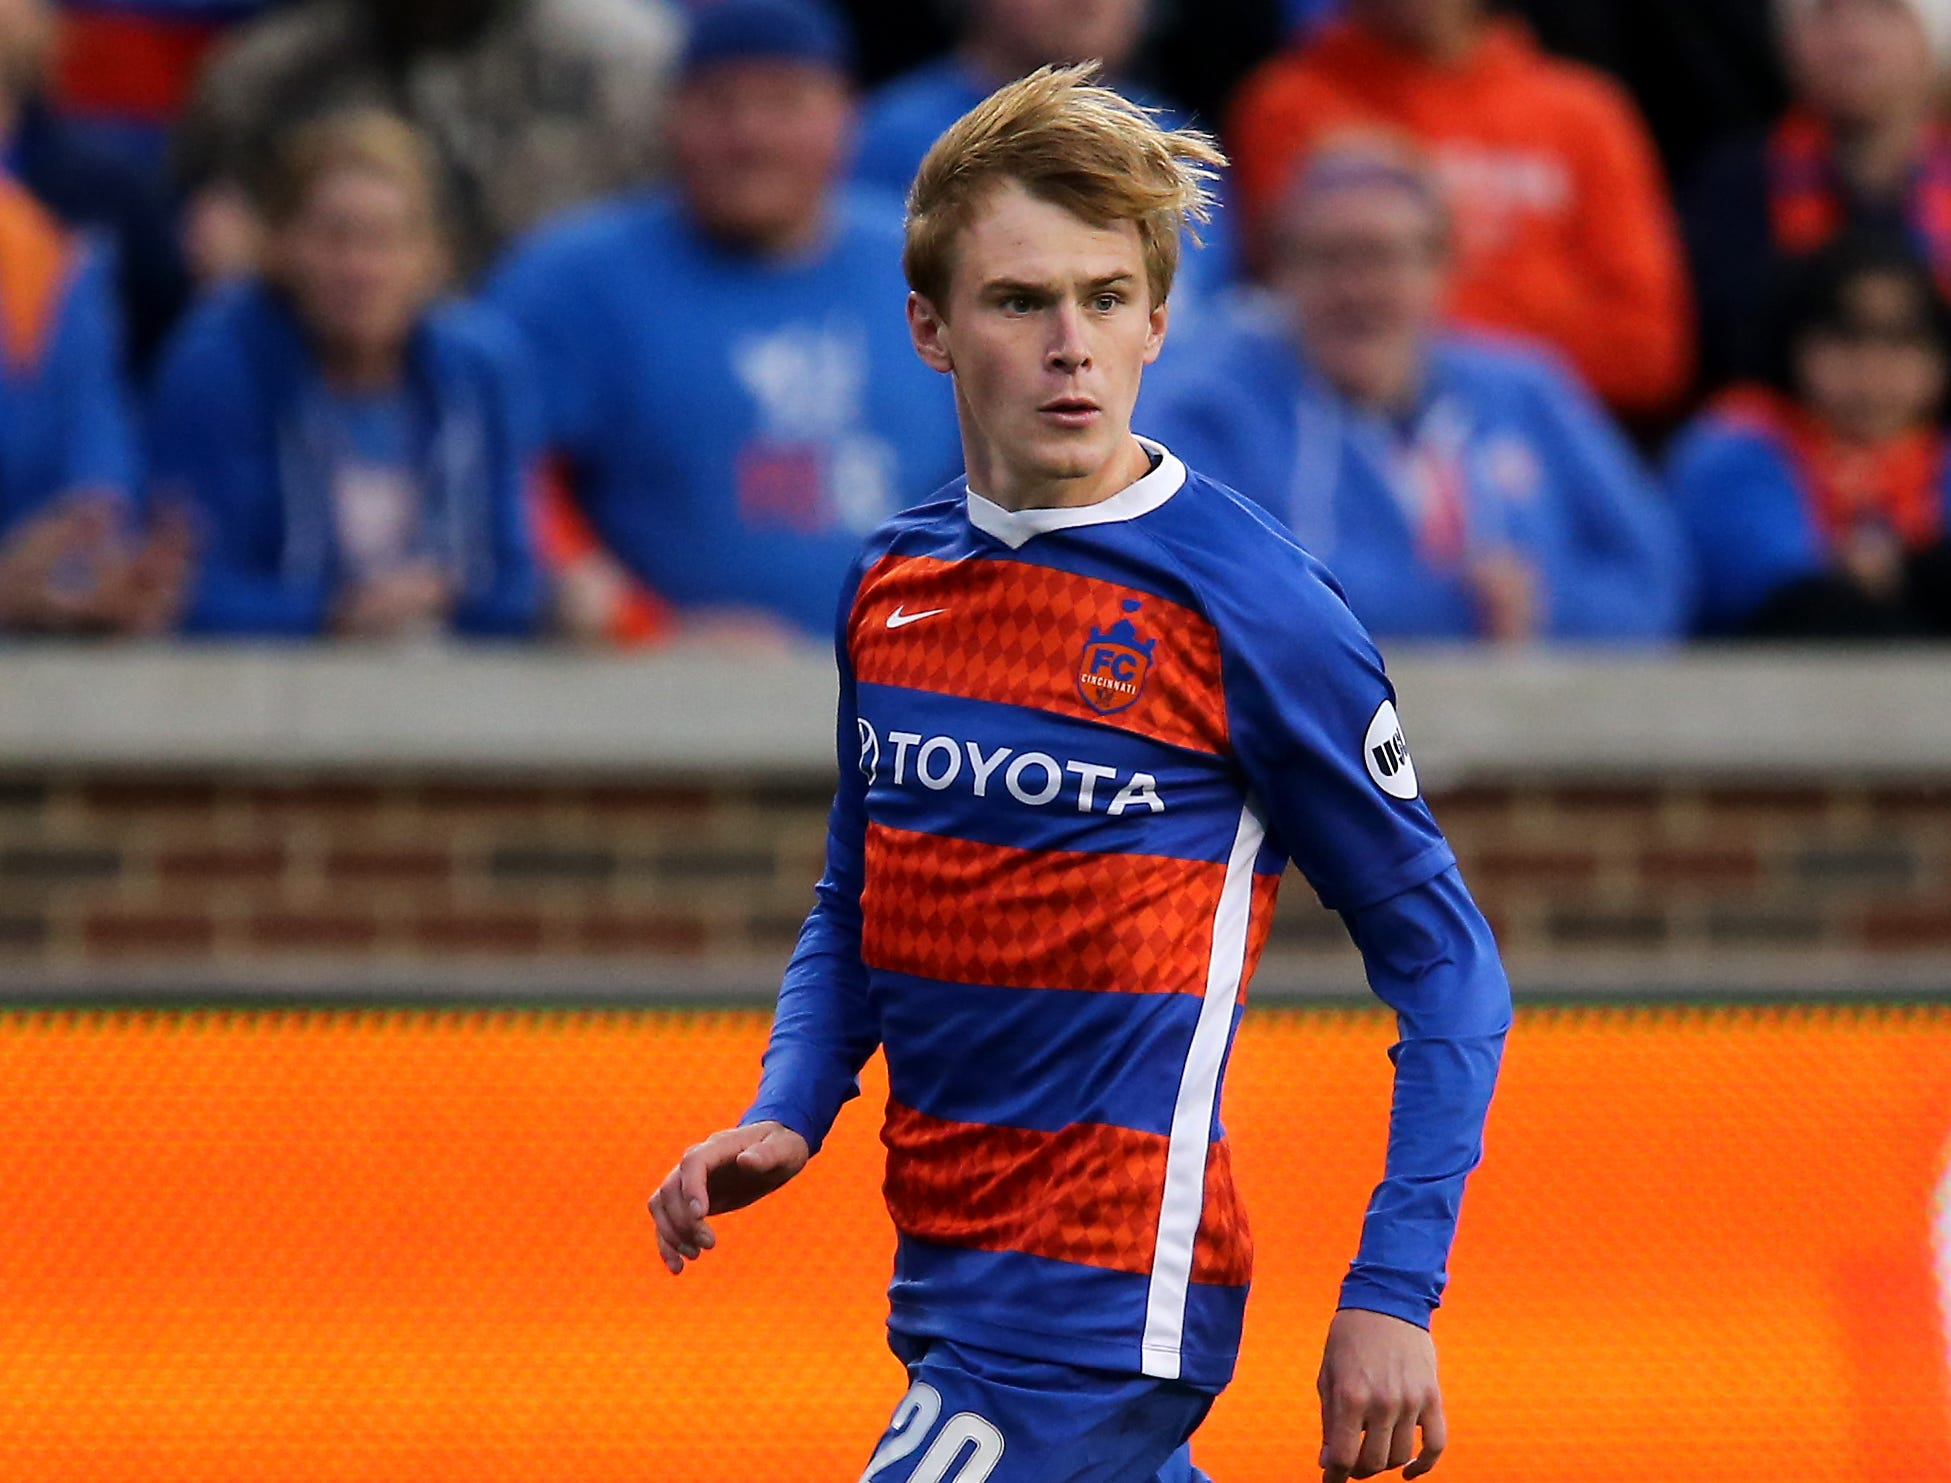 FC Cincinnati midfielder Jimmy McLaughlin (20) brings the ball upfield in the second extra time period during a USL soccer playoff game between Nashville SC and FC Cincinnati,Saturday, Oct. 20, 2018, at Nippert Stadium in Cincinnati. FC Cincinnati won 6-5 on penalties.